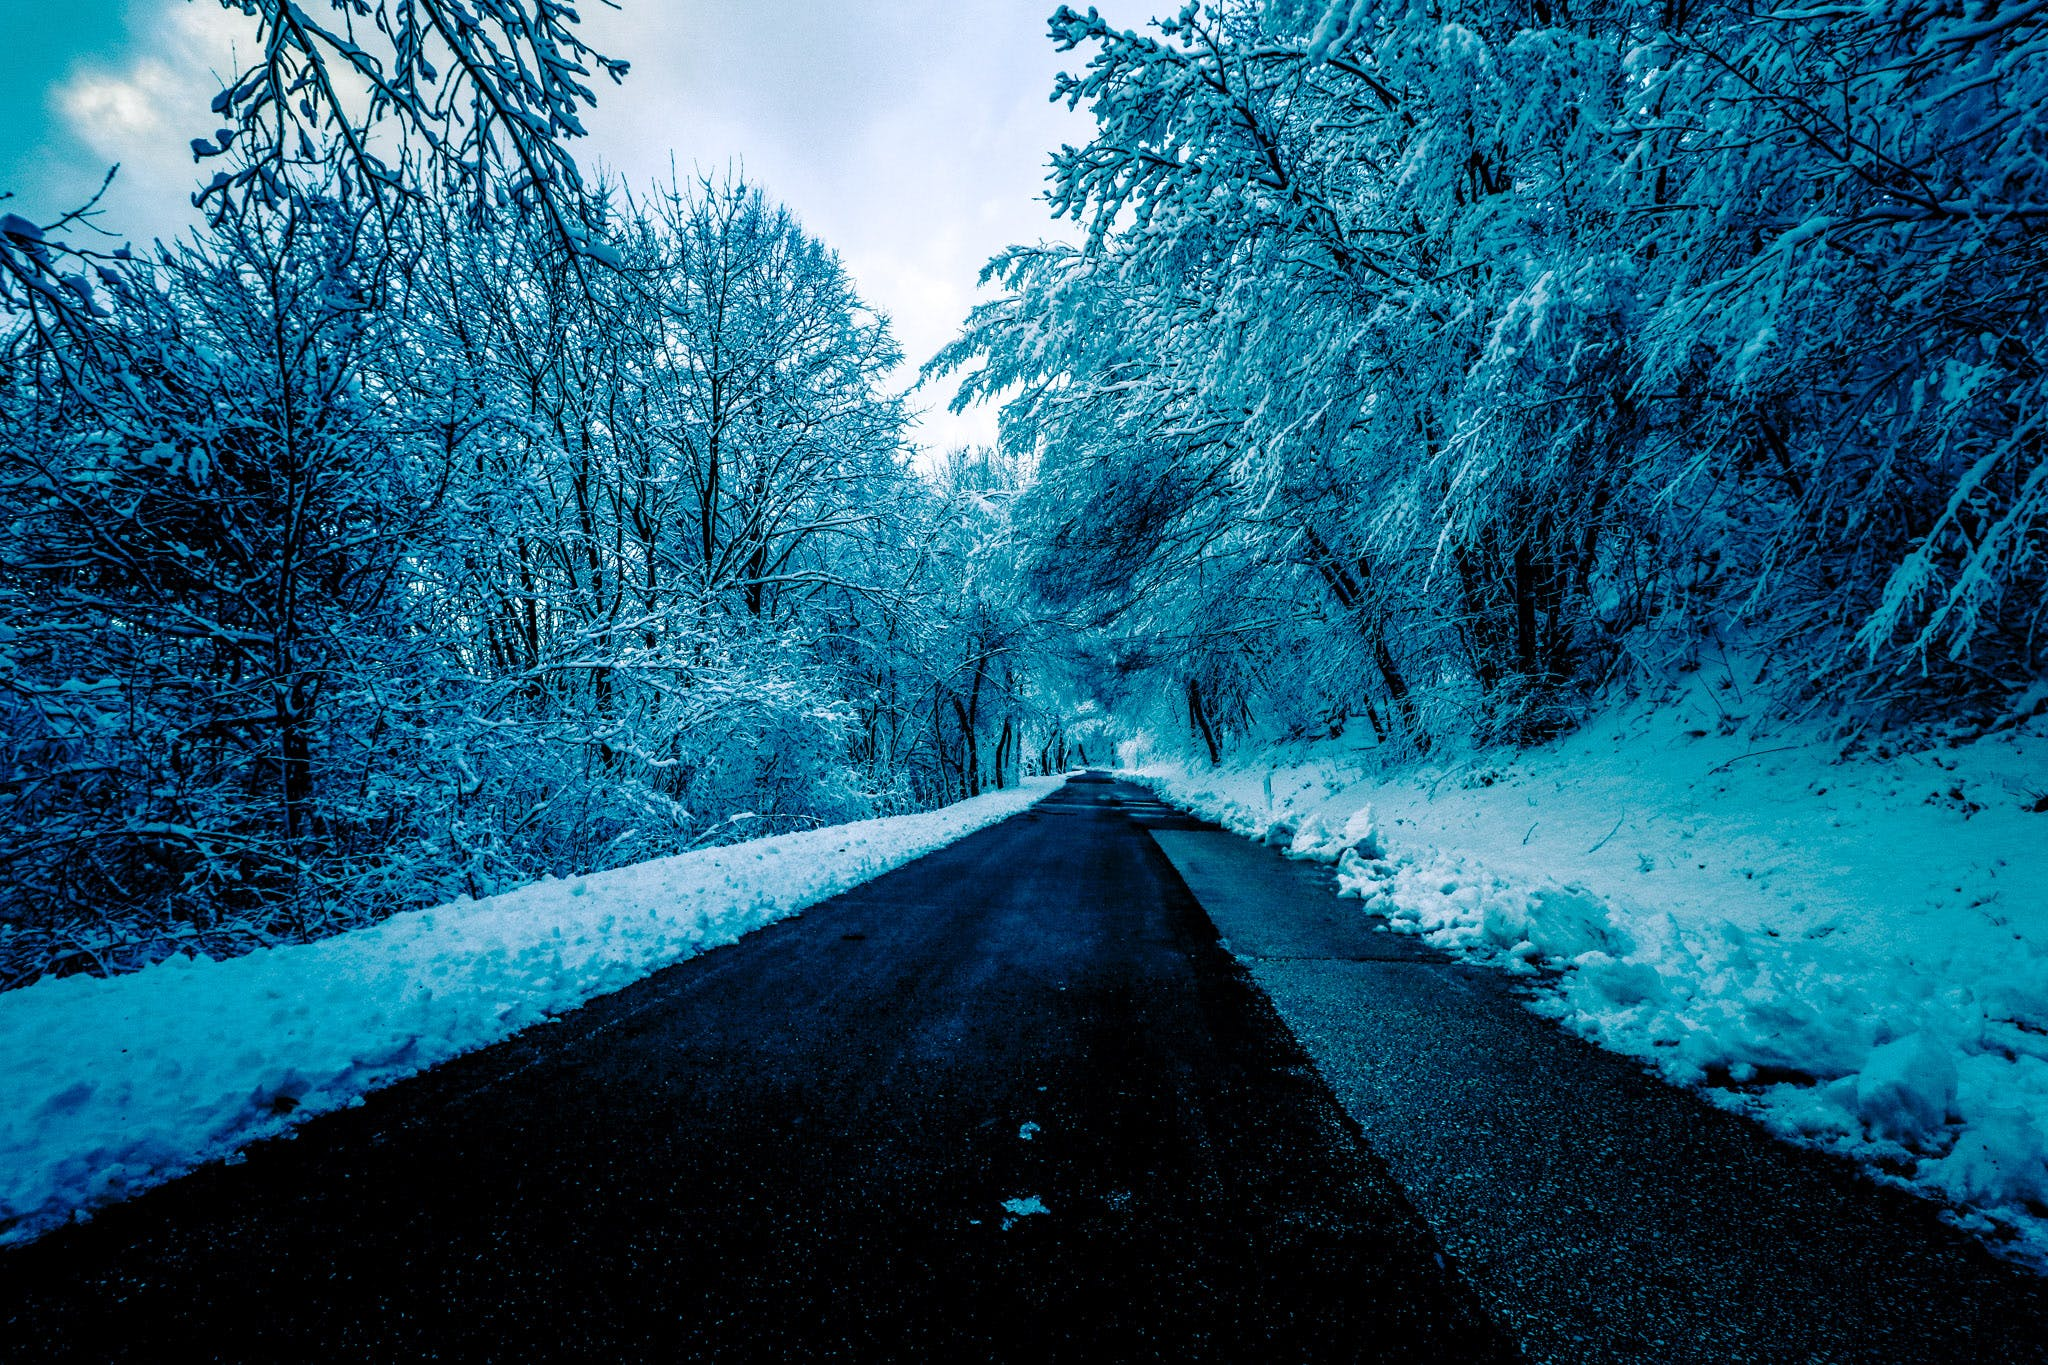 Black Concrete Road Surrounded by Trees With Snow